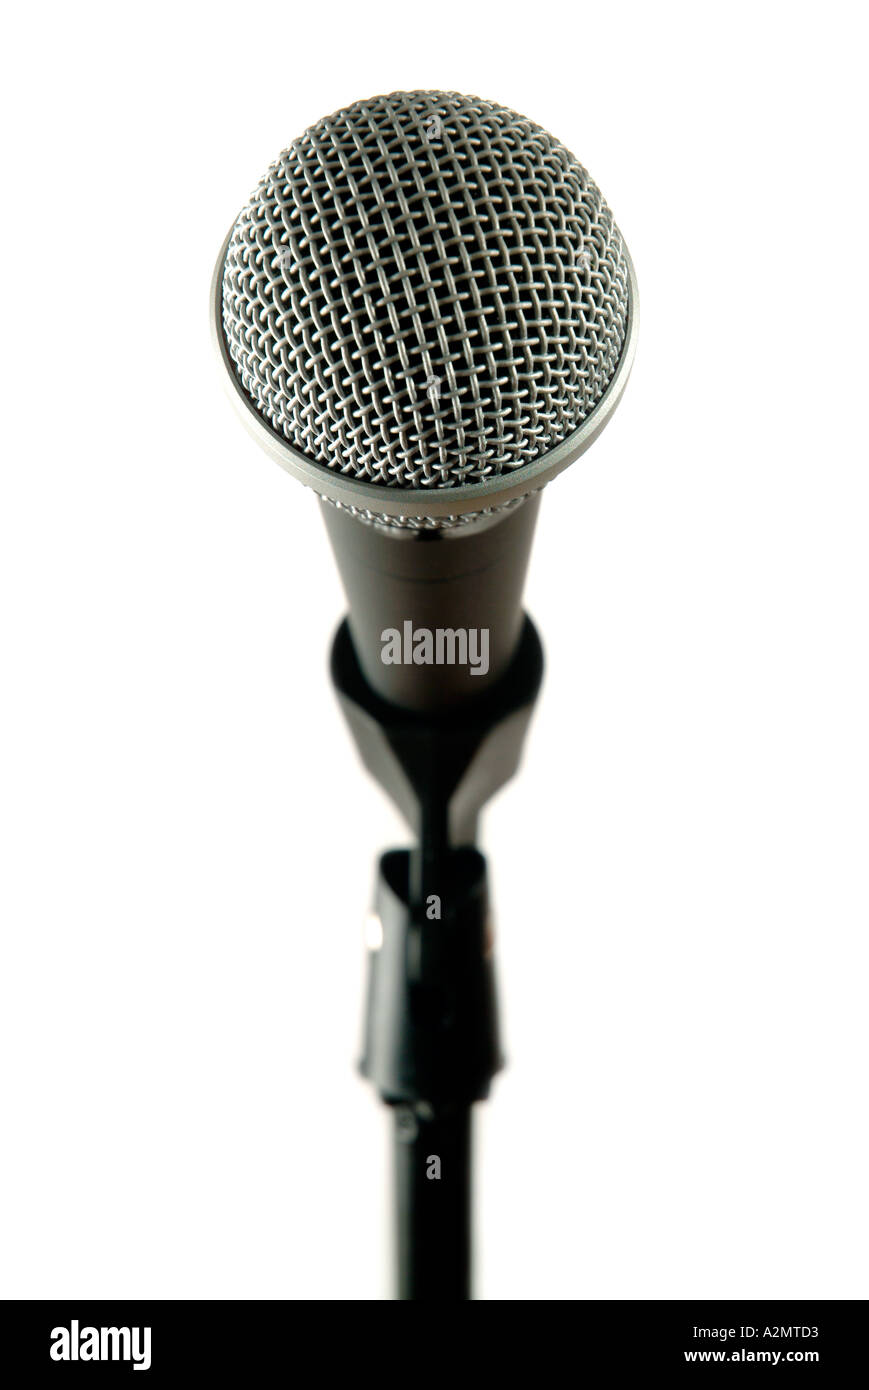 Microphone on stand - Stock Image